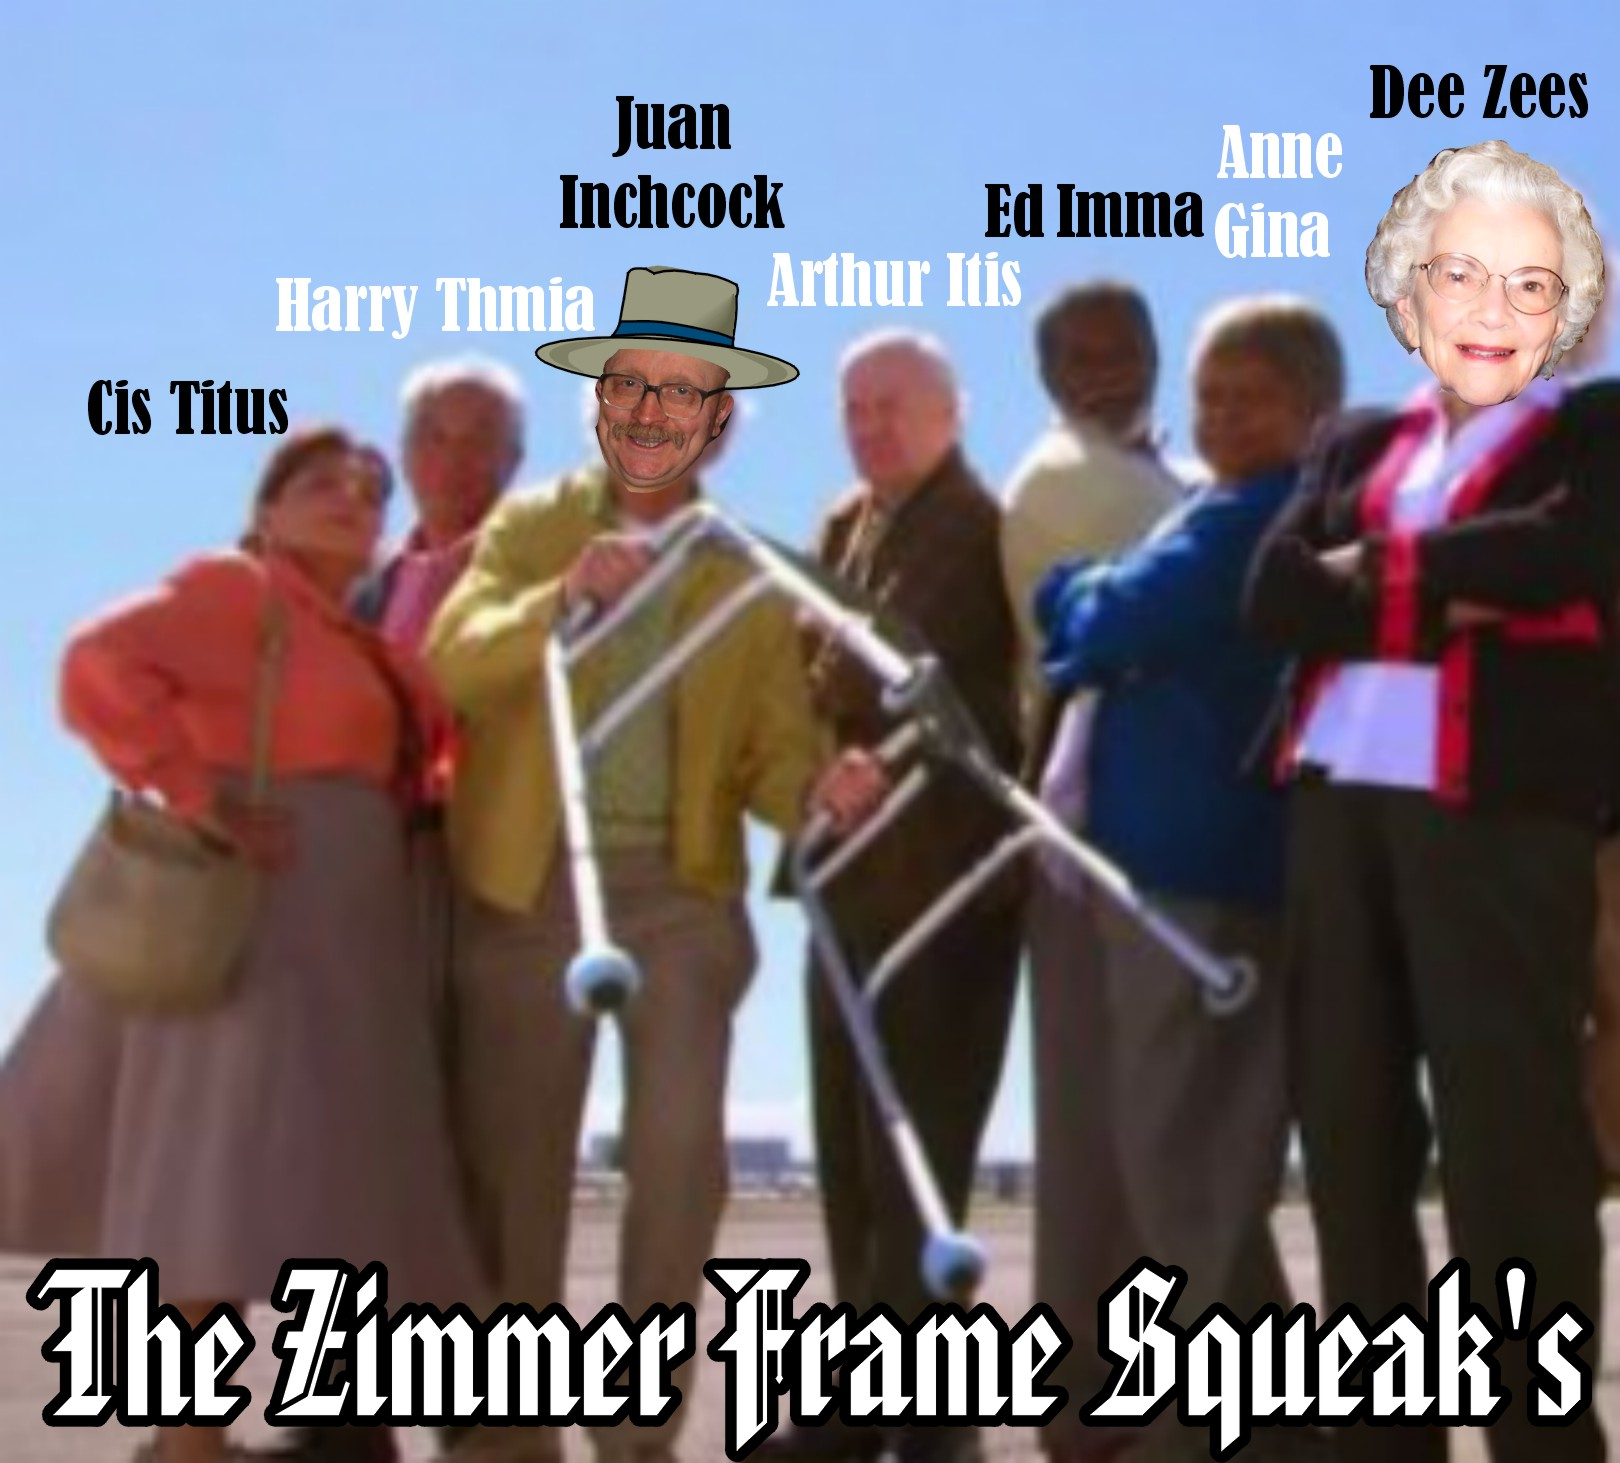 Retirement Colonies Senior Citizens Find A Home Away From: Zimmer Frame Squeaks Prepare For Their First Performance